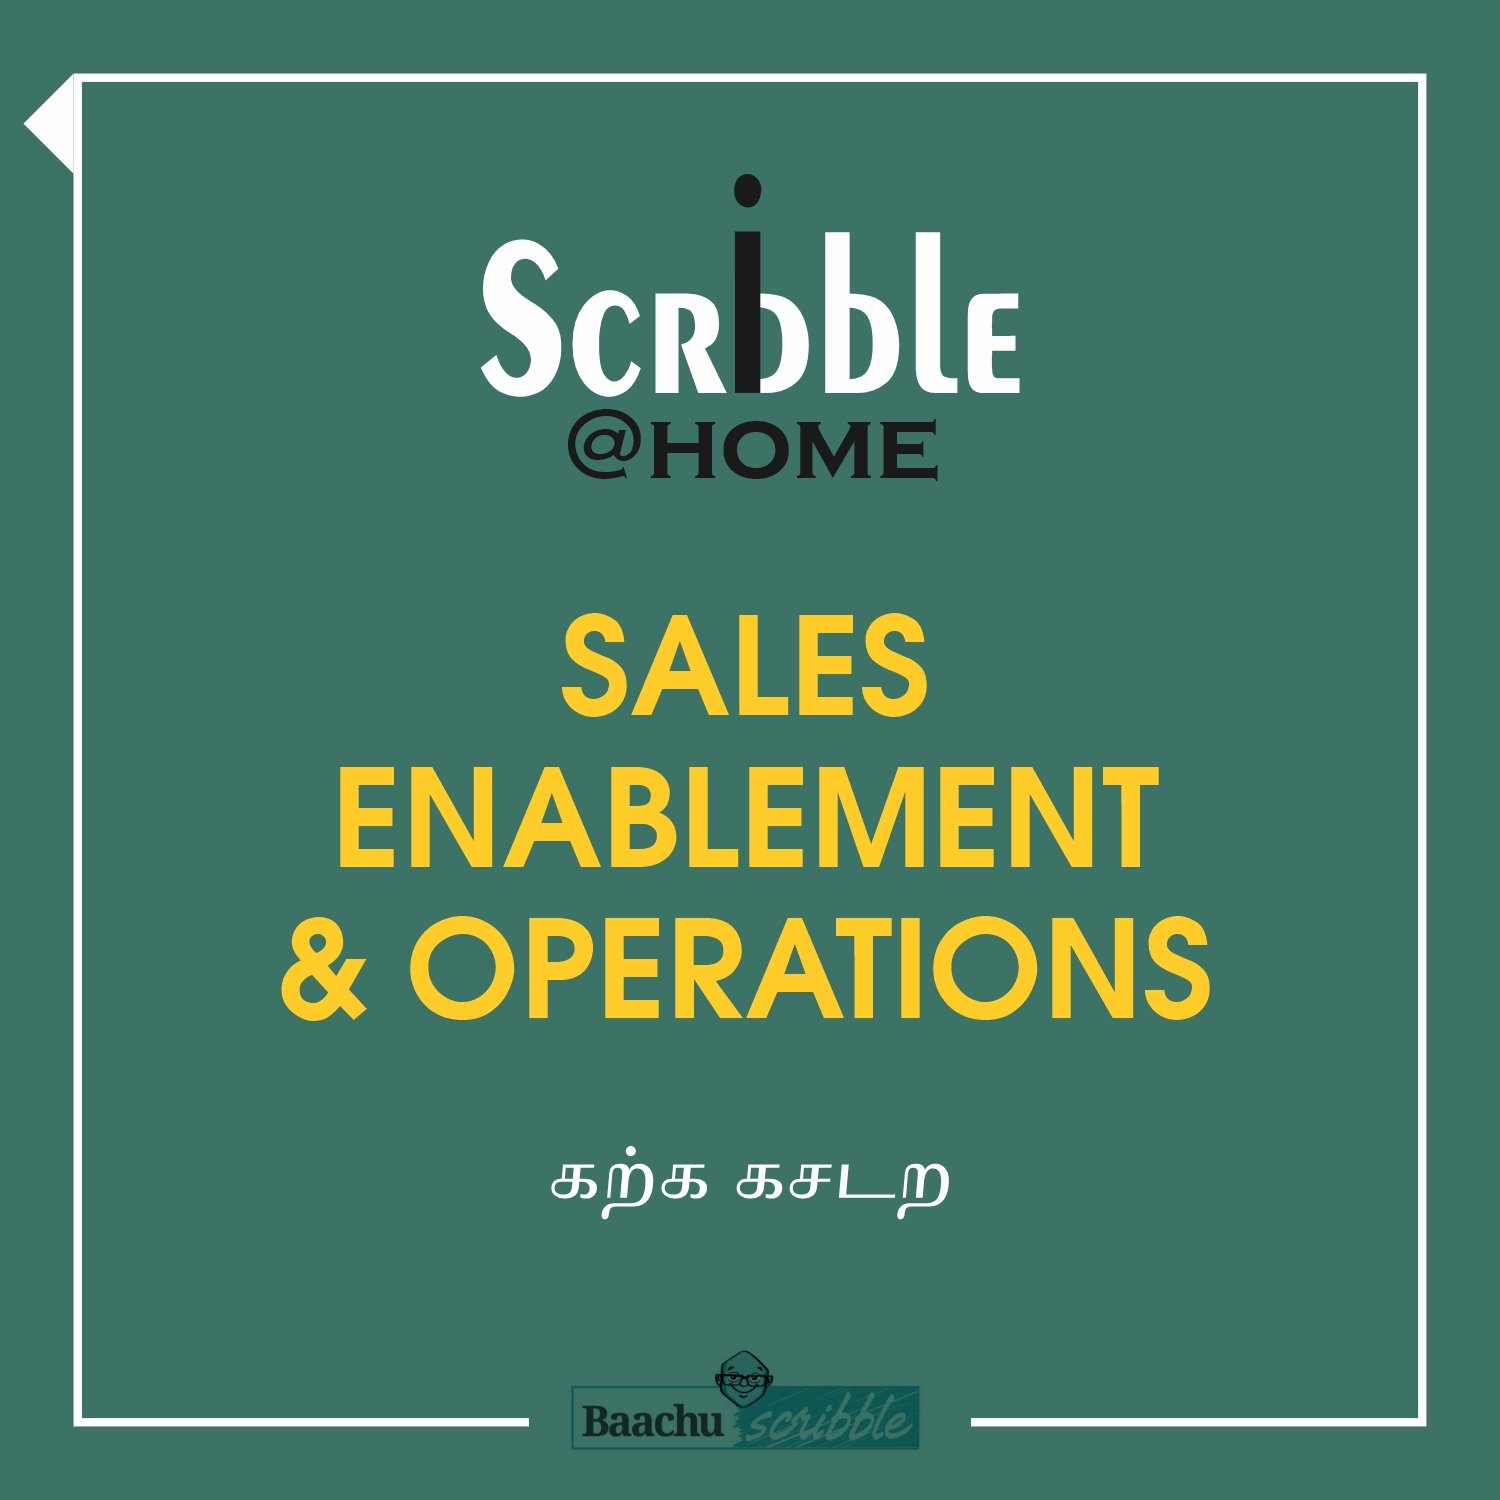 Sales Enablement & Operations